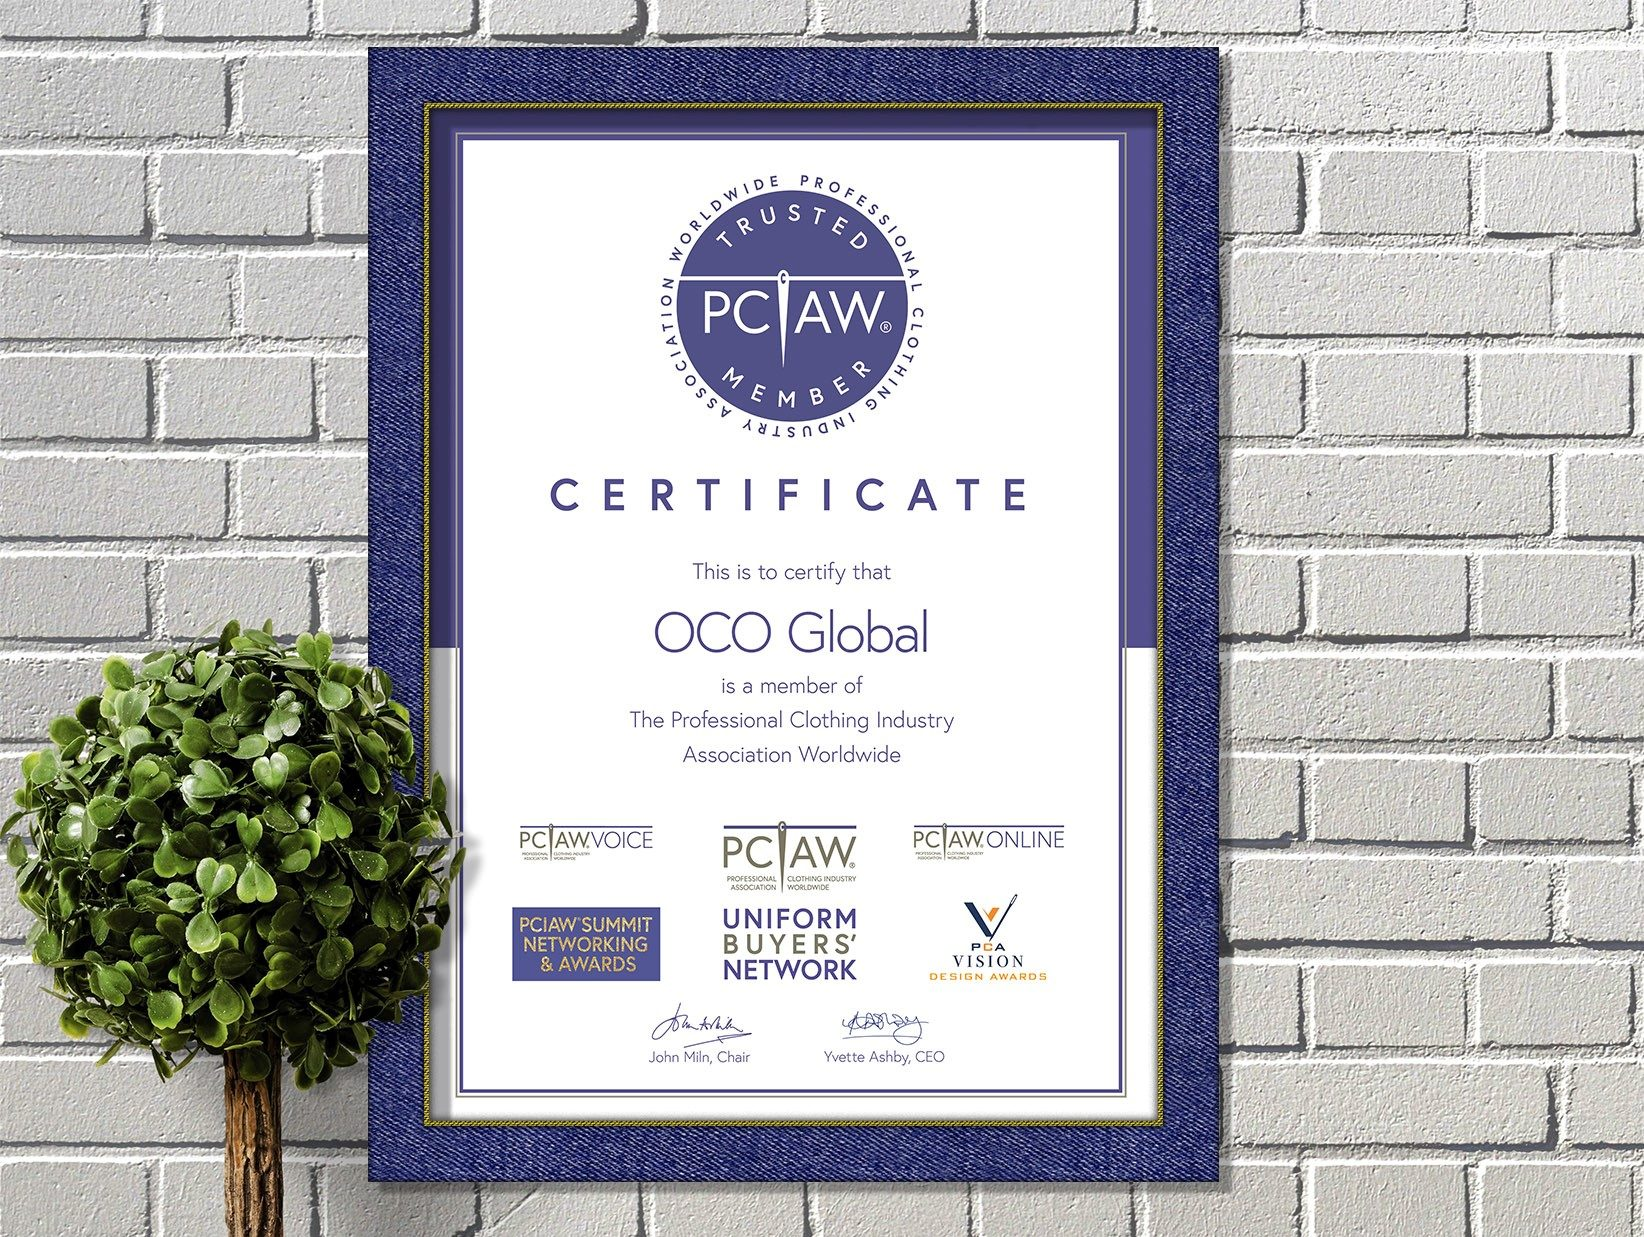 OCO Global, a leading international economic development advisory firm with 11 offices across the world, has become a PCIAW® Trusted Member.